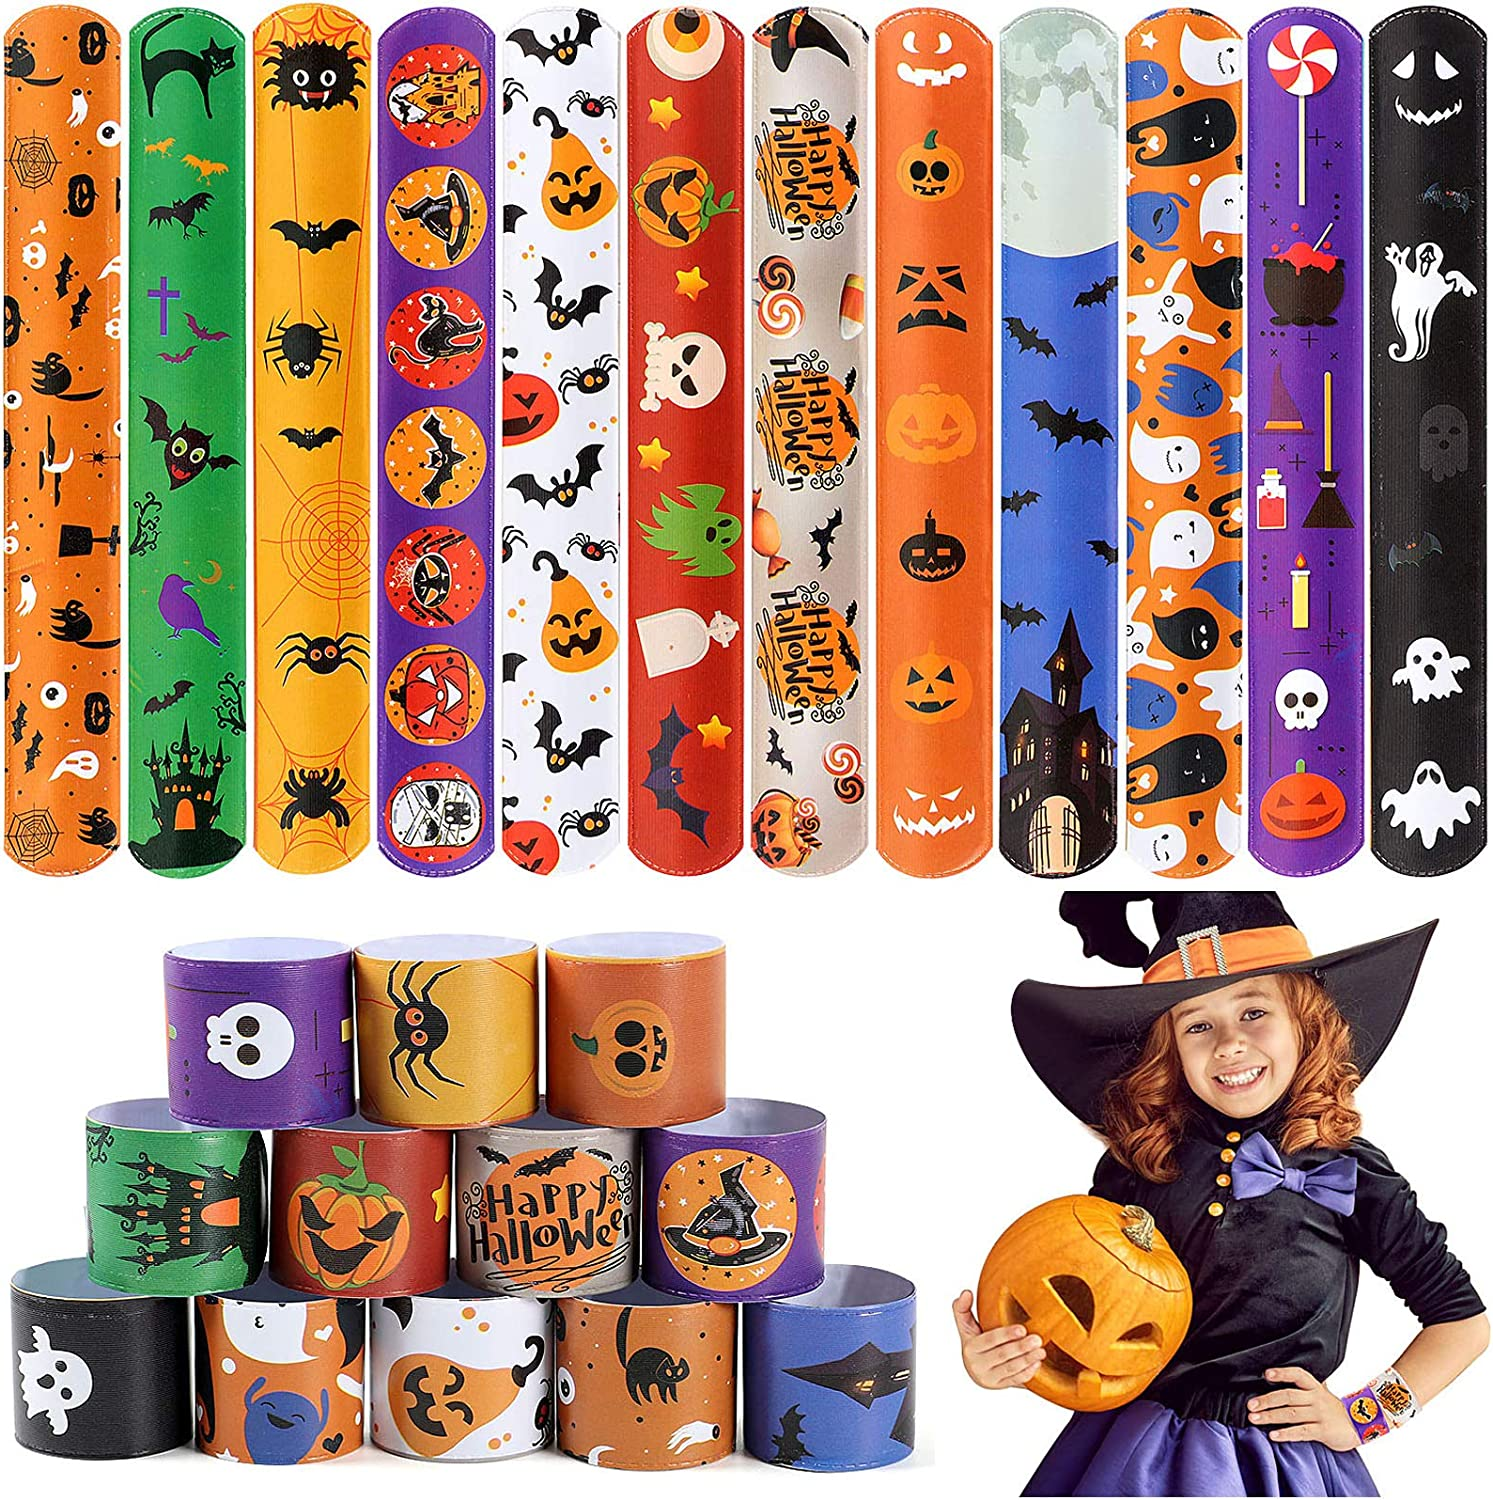 48 PCS Halloween Slap Bracelets for Kids Snap Bracelets Bulk with Spider Pumpkin Ghost Animal Print Craft Halloween Party Favors Birthday Gifts